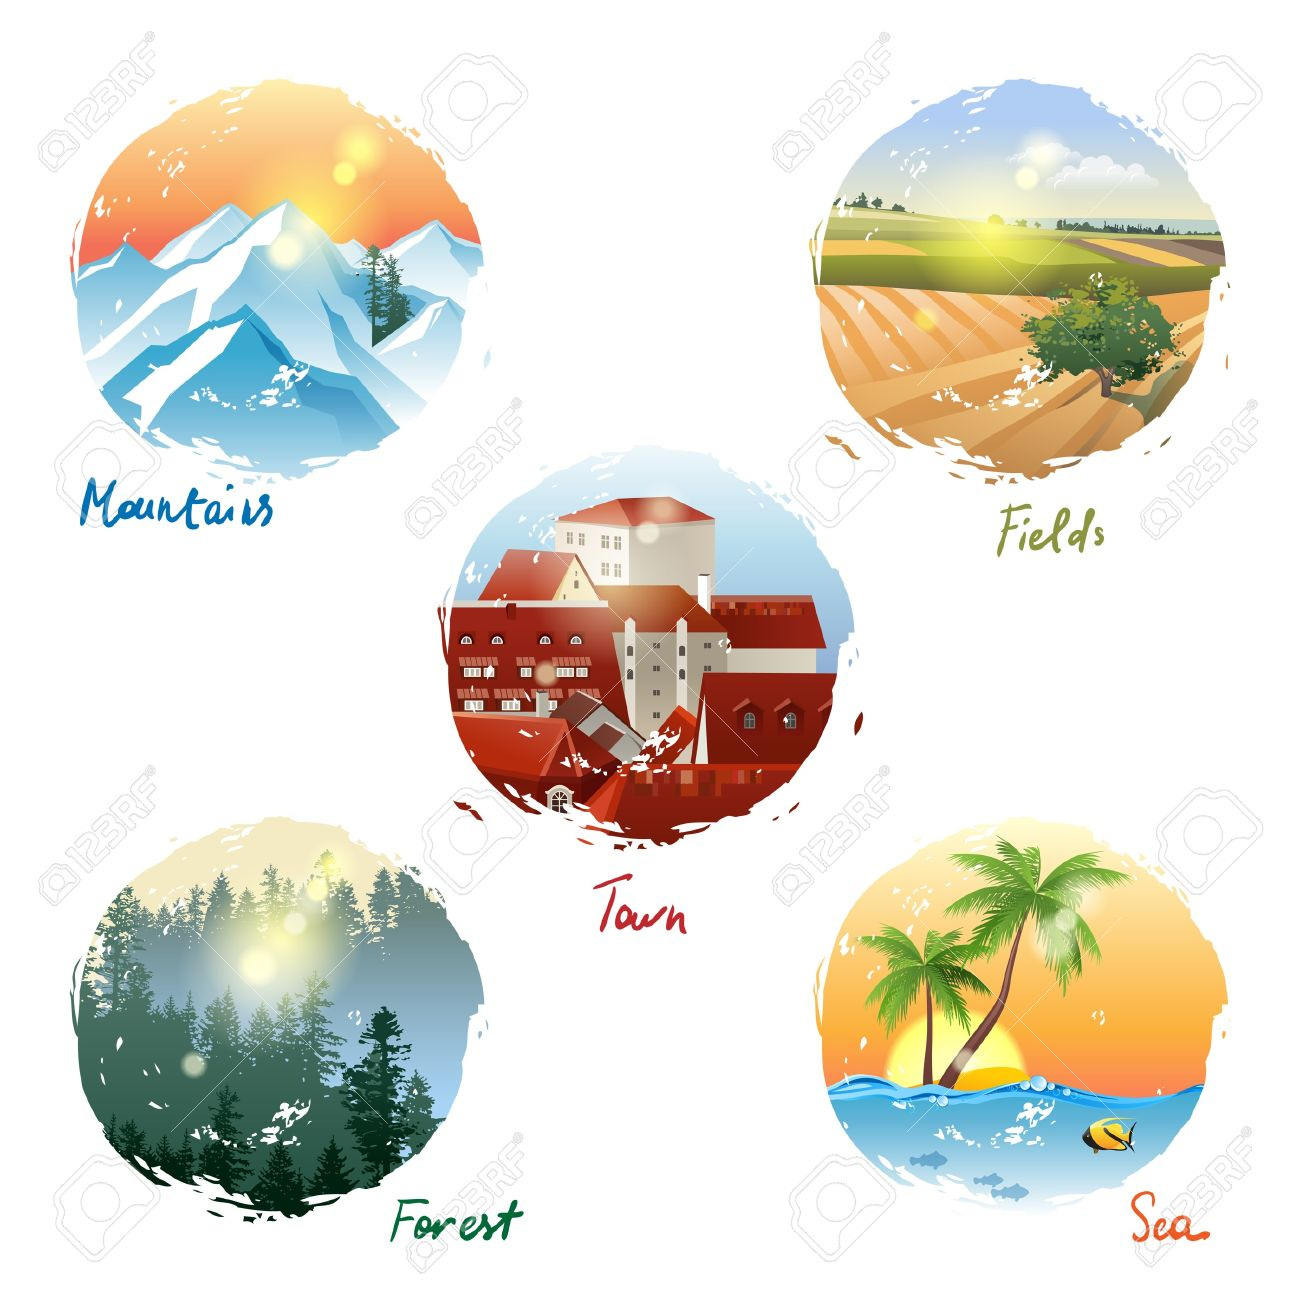 5 different landscape types - mountains, fields, town, forest and sea Stock  Vector - 5 Different Landscape Types - Mountains, Fields, Town, Forest